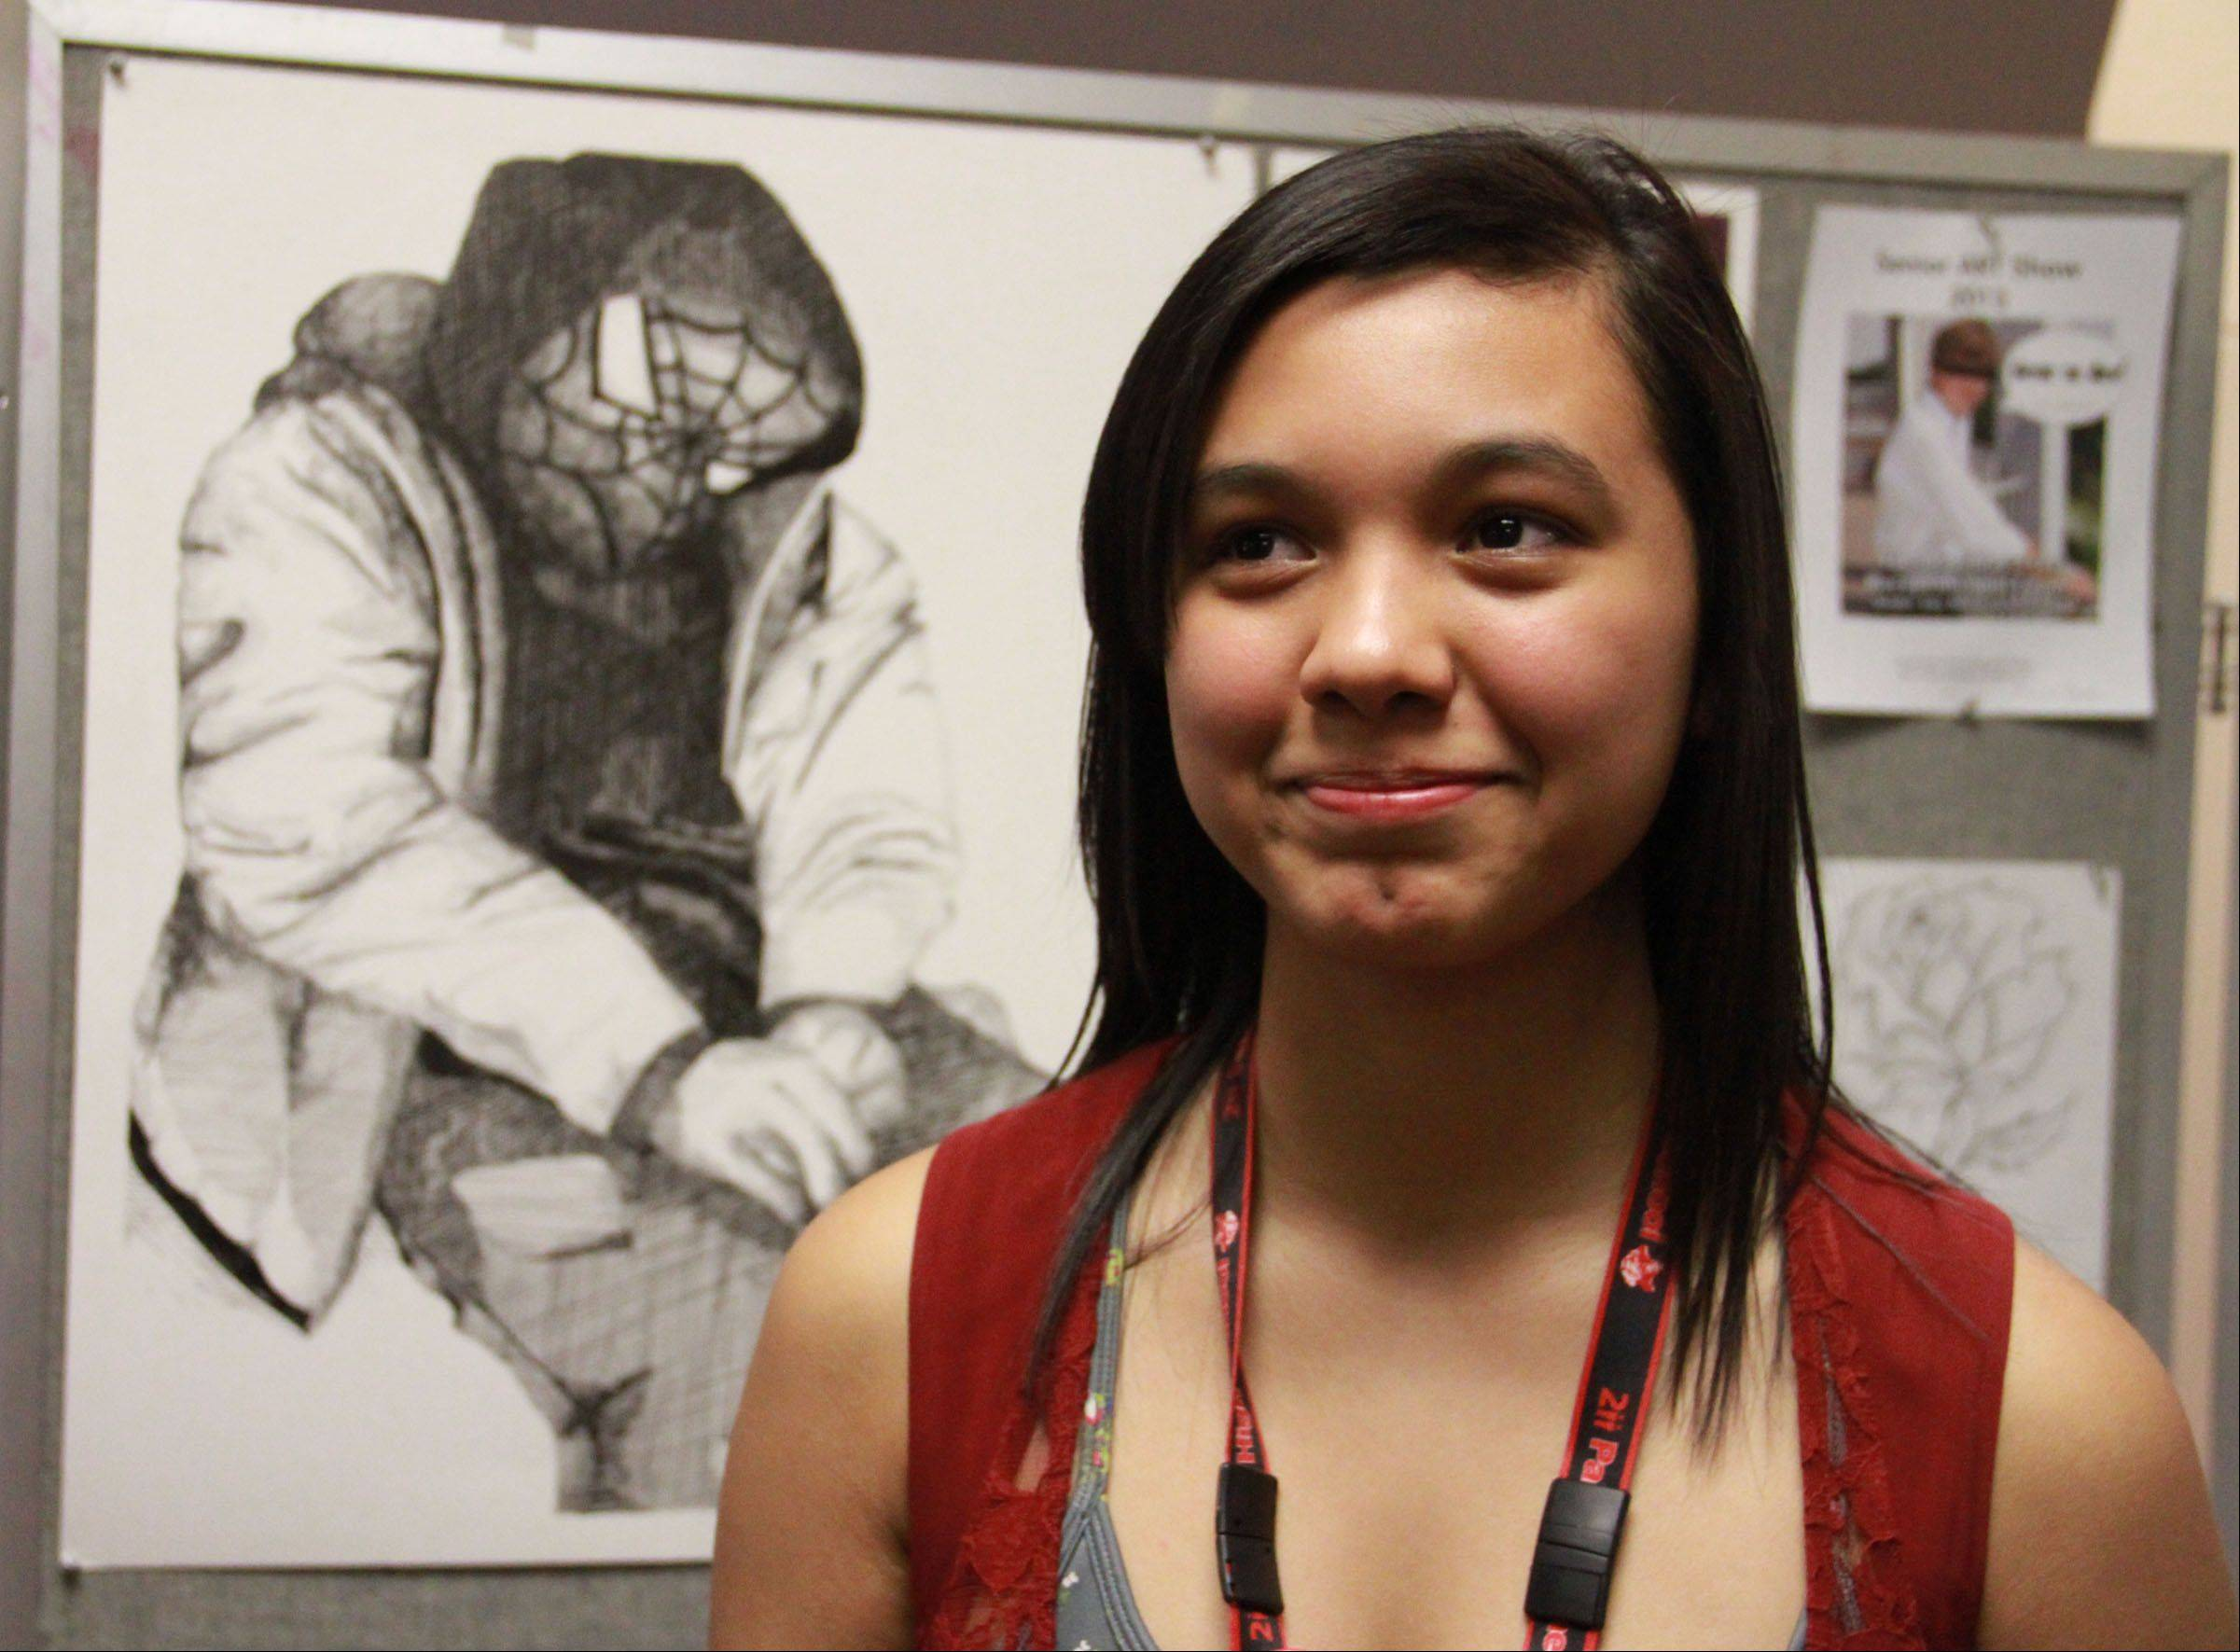 A talented artist whose work merits display at Palatine High School, graduating senior Rebecca Alanis will study architecture in college. She wasn't taking classes to prepare her for college until she joined Project Excel, a program that pushes minority students to broaden their possibilities.